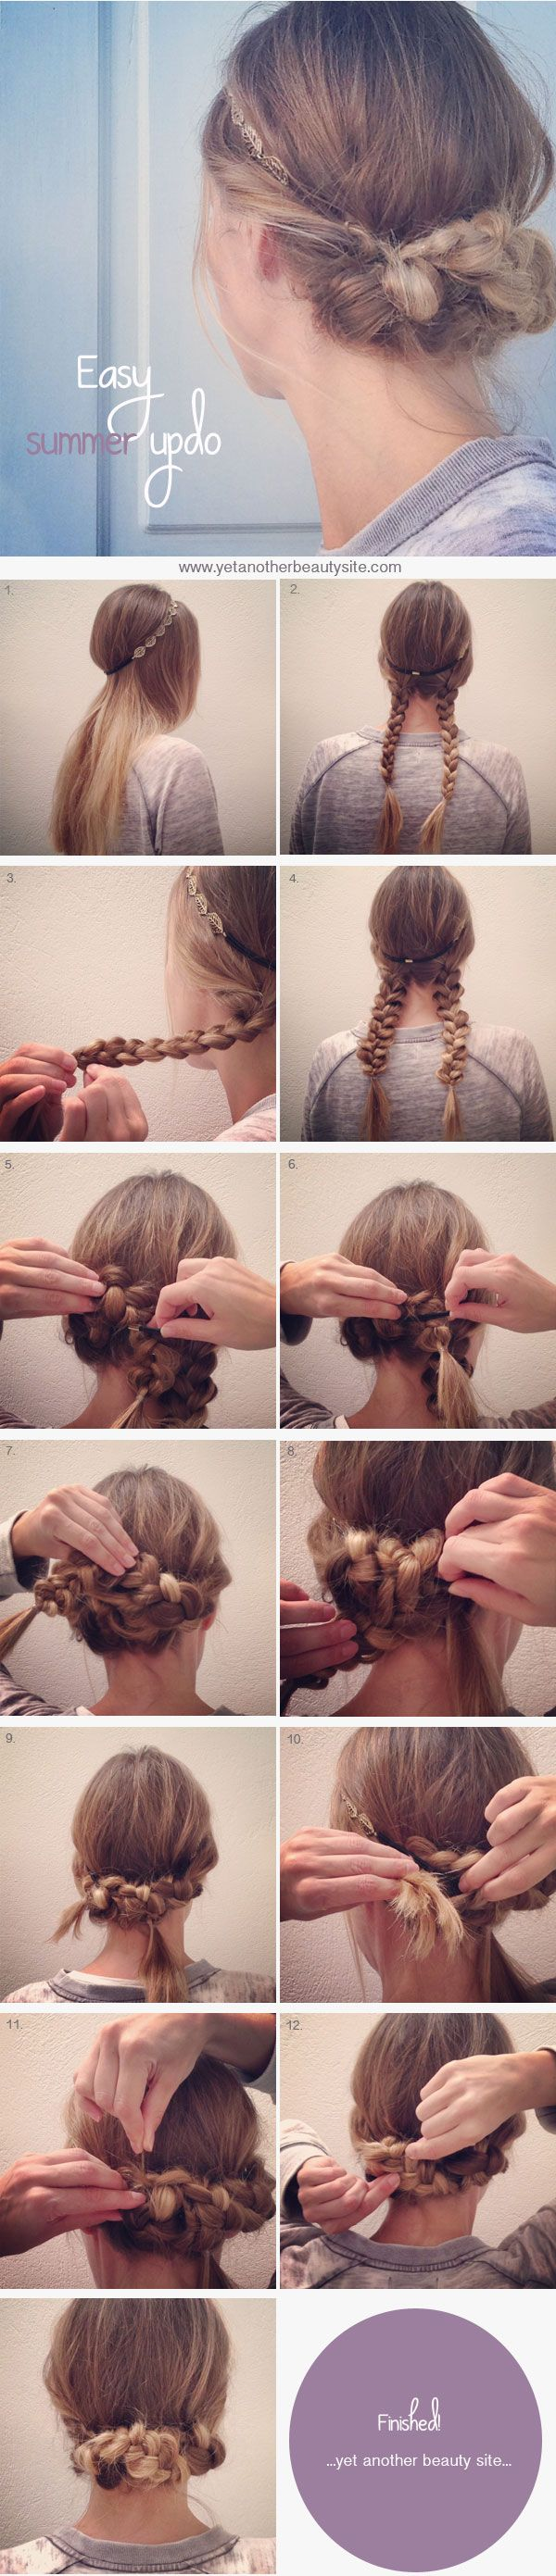 Yet another beauty site #hair #hairtutorials